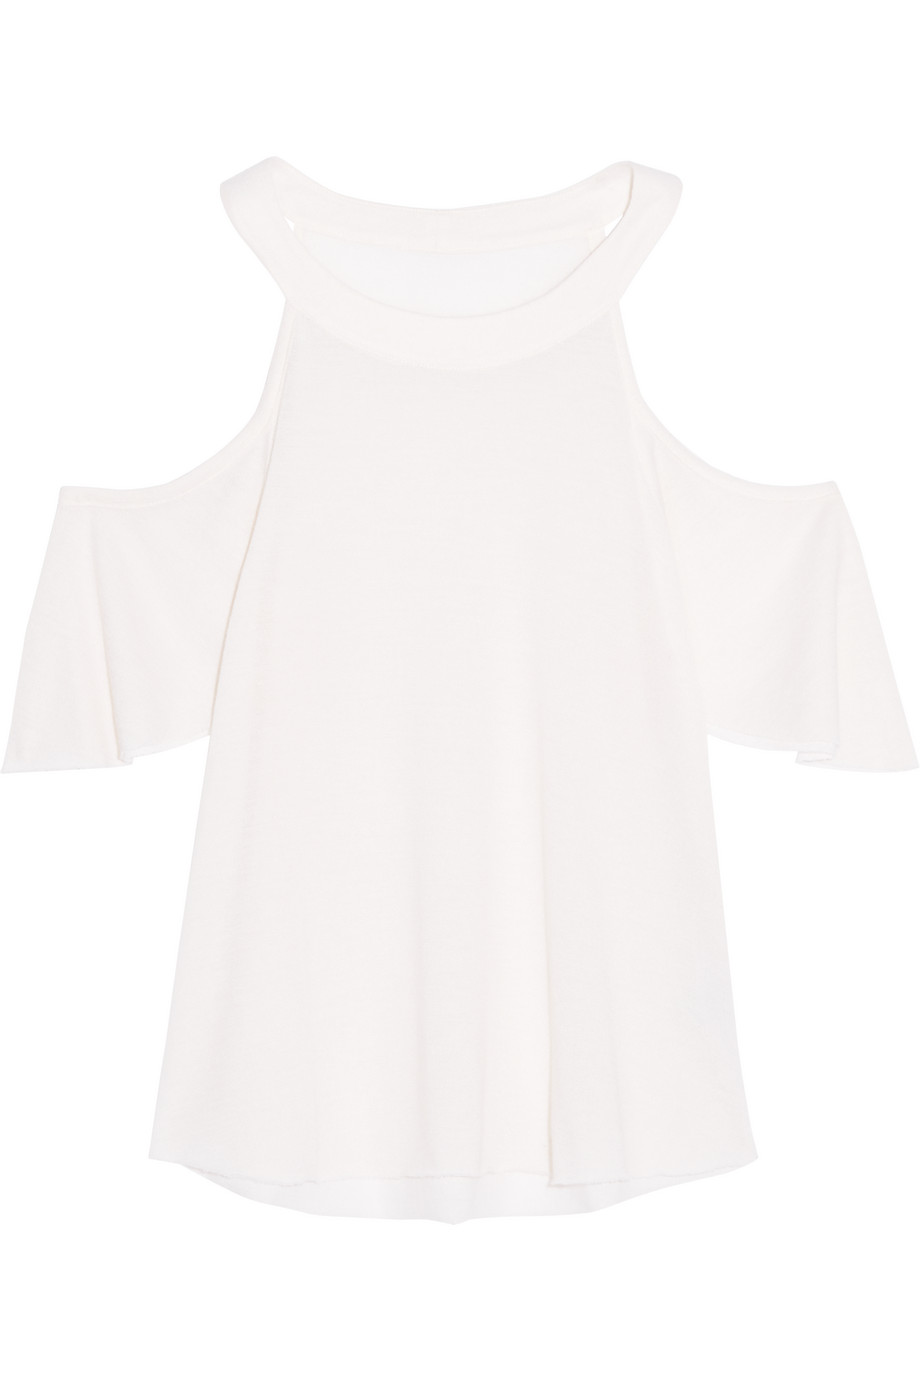 Cutout Cashmere and Silk-Blend Top, The Elder Statesman